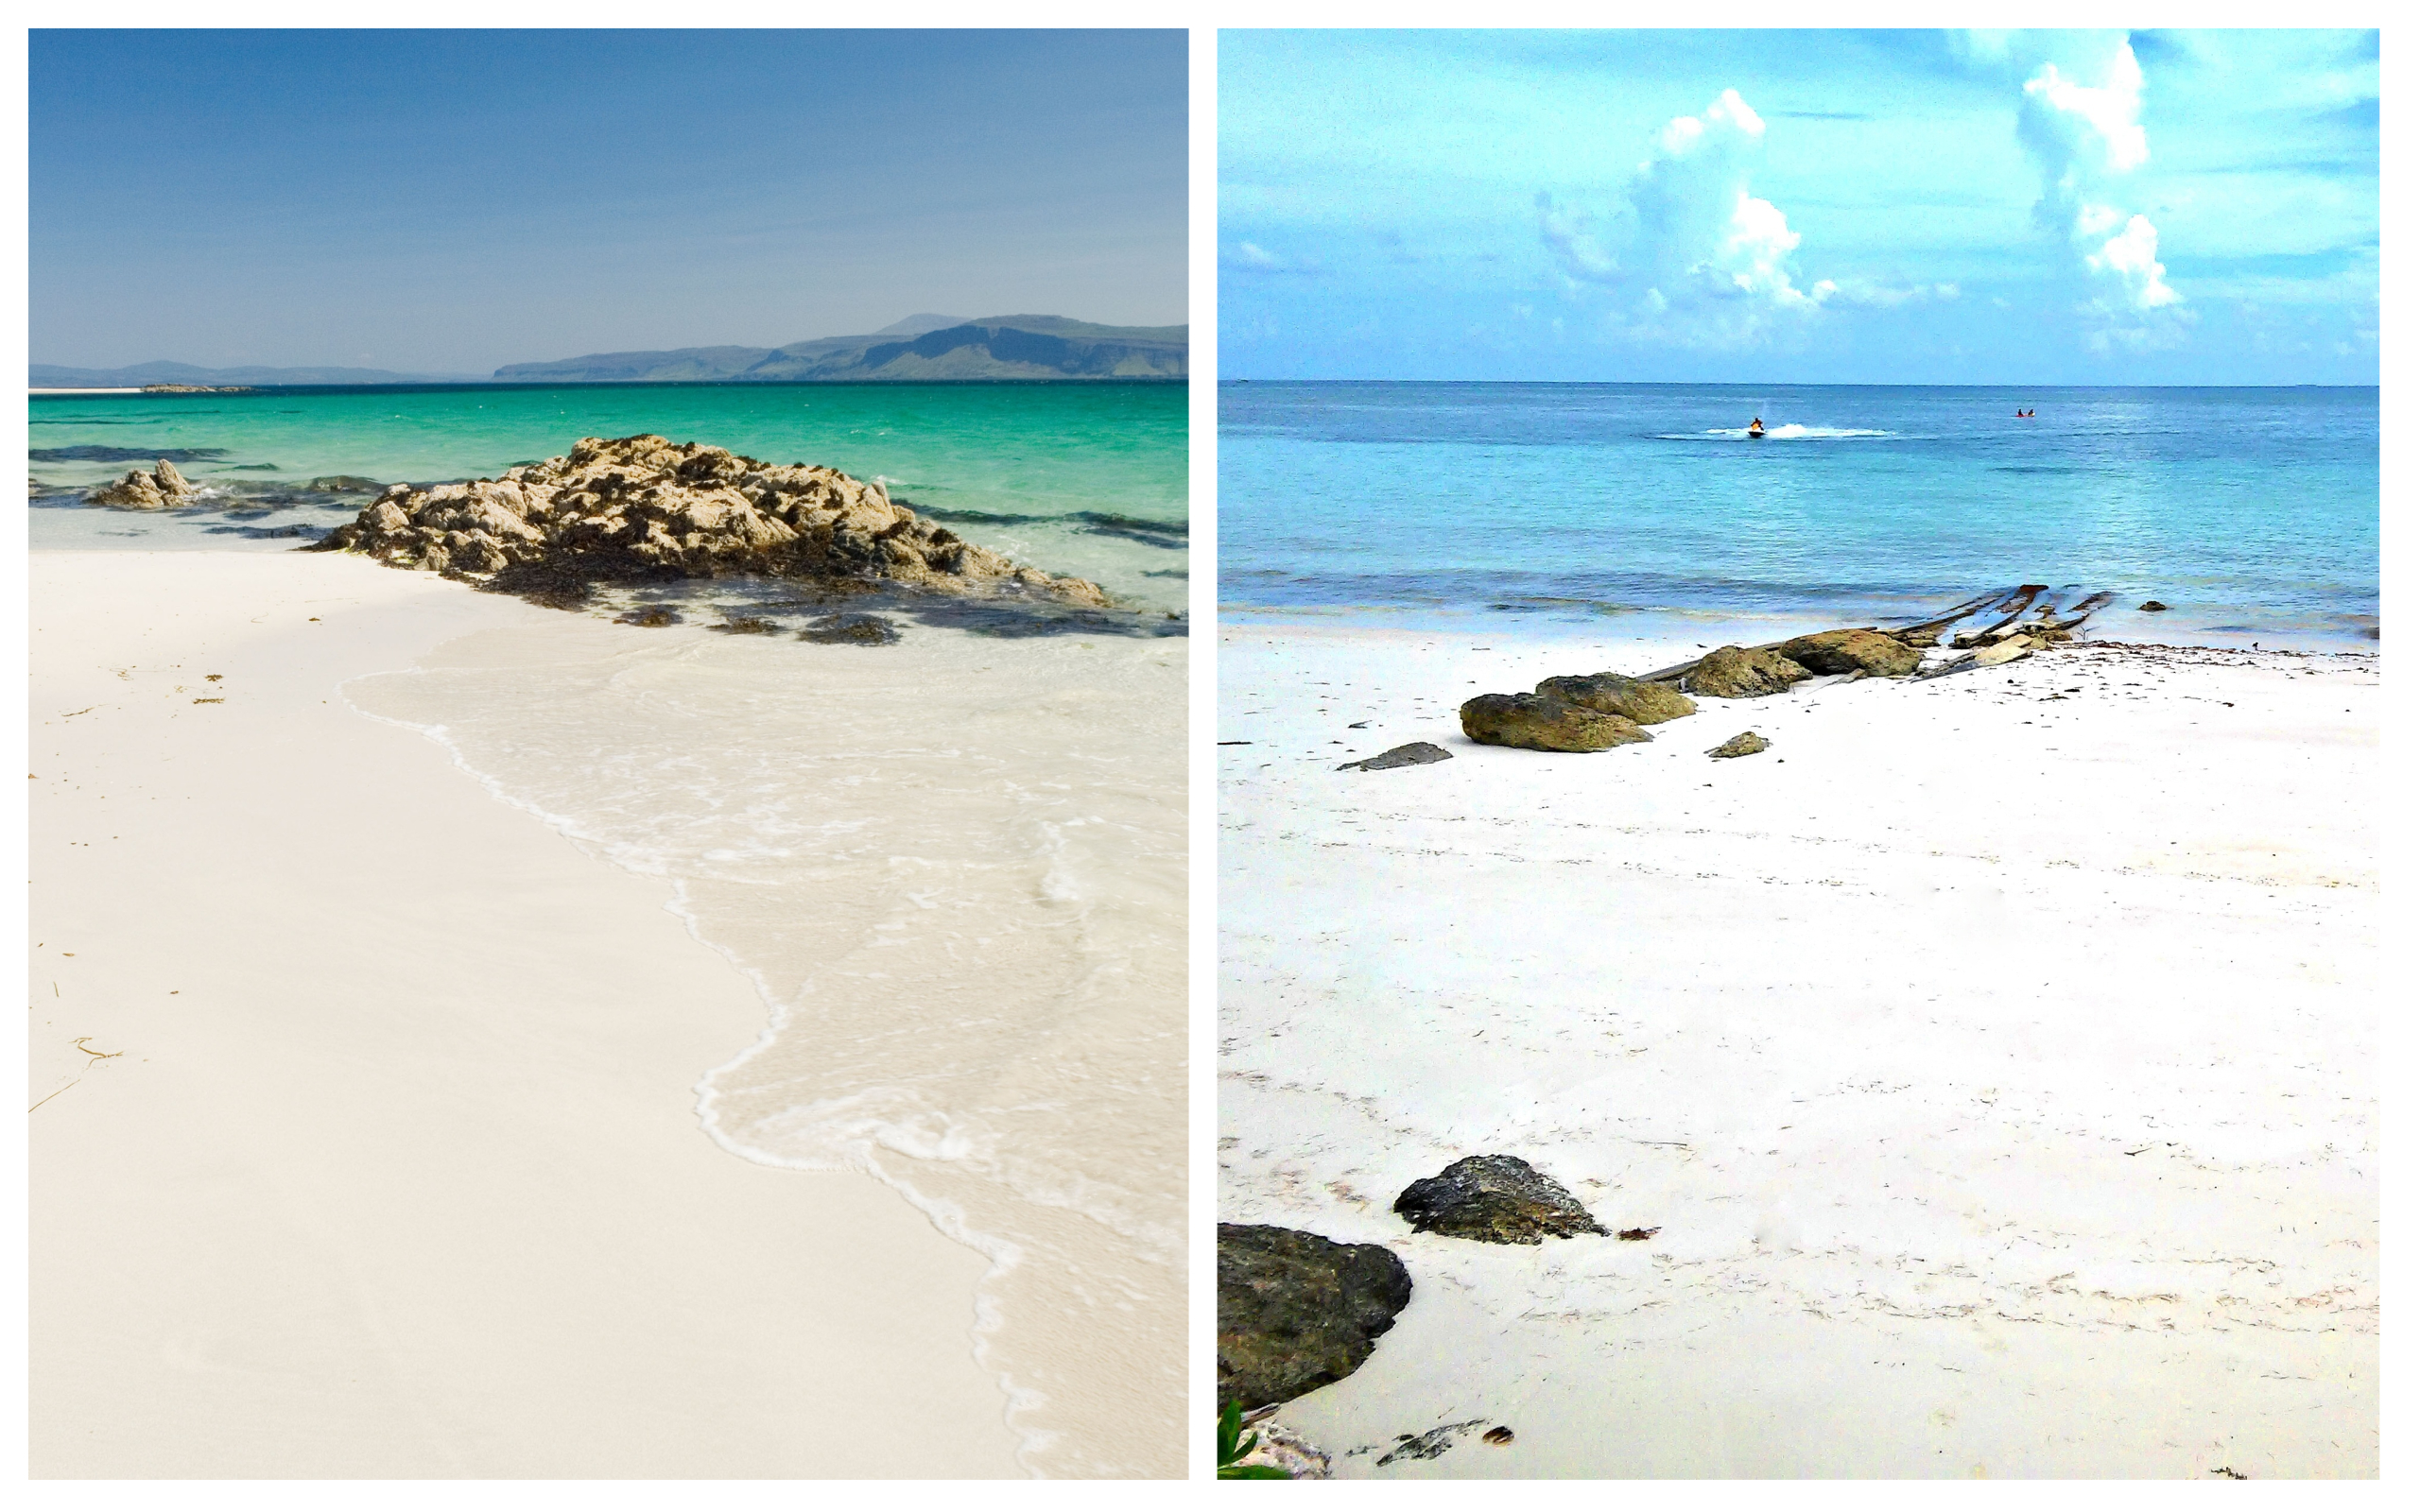 Left - The North coast of Iona, Scotland; Right - Gold Rock Beach, The Bahamas (Alamy/Thinkstock/PA)